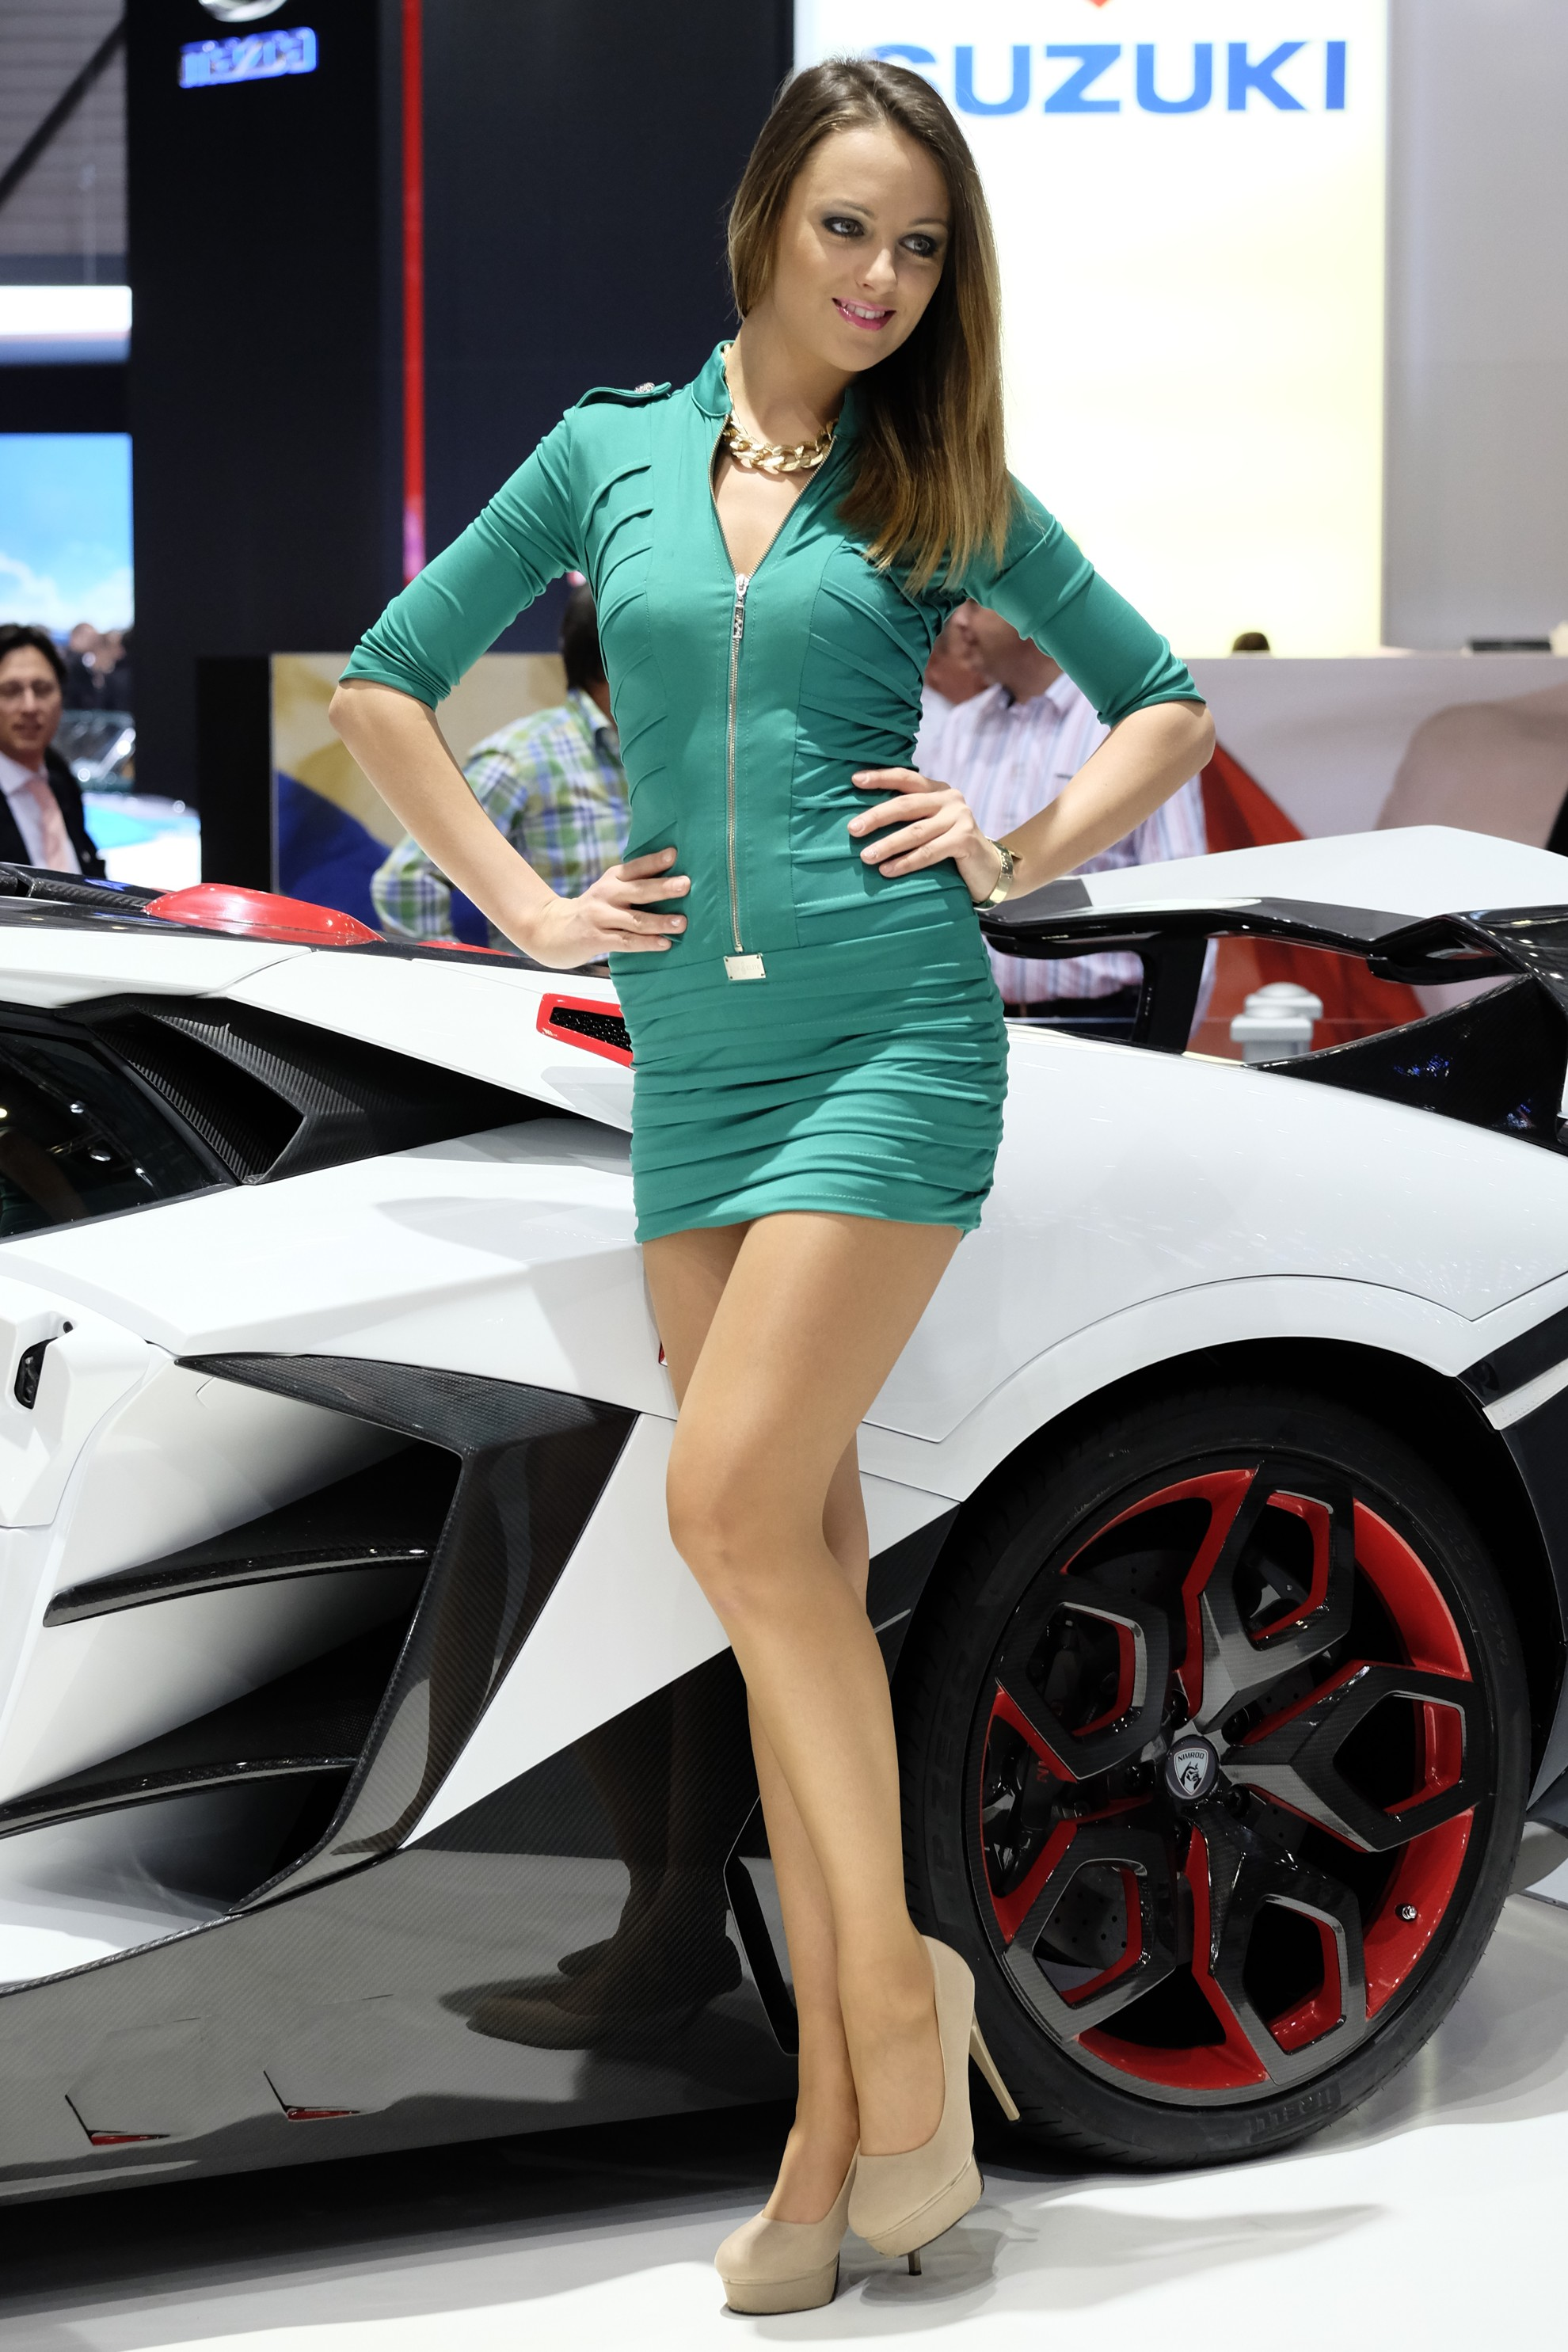 geneva motor show car show girls 2014. Black Bedroom Furniture Sets. Home Design Ideas